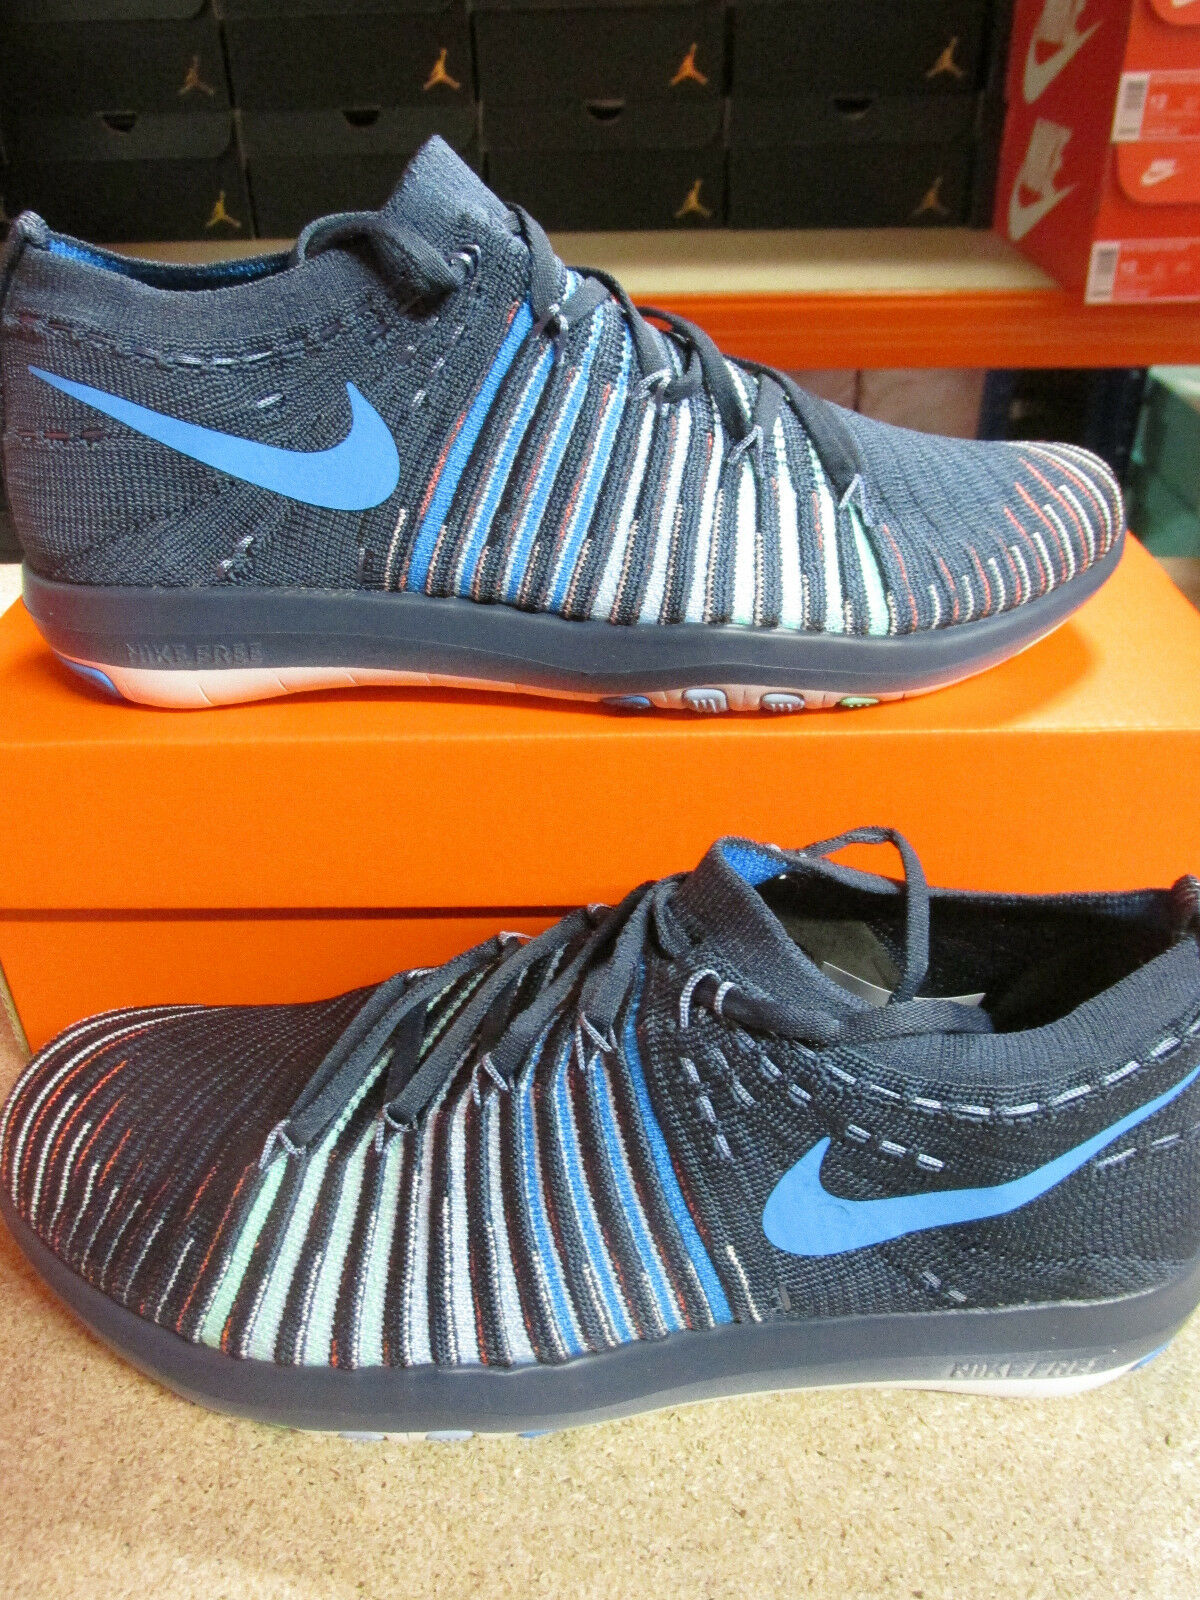 Nike Free Transform Flyknit Womens Running Trainers 833410 833410 Trainers 402 Sneakers Shoes c0627c